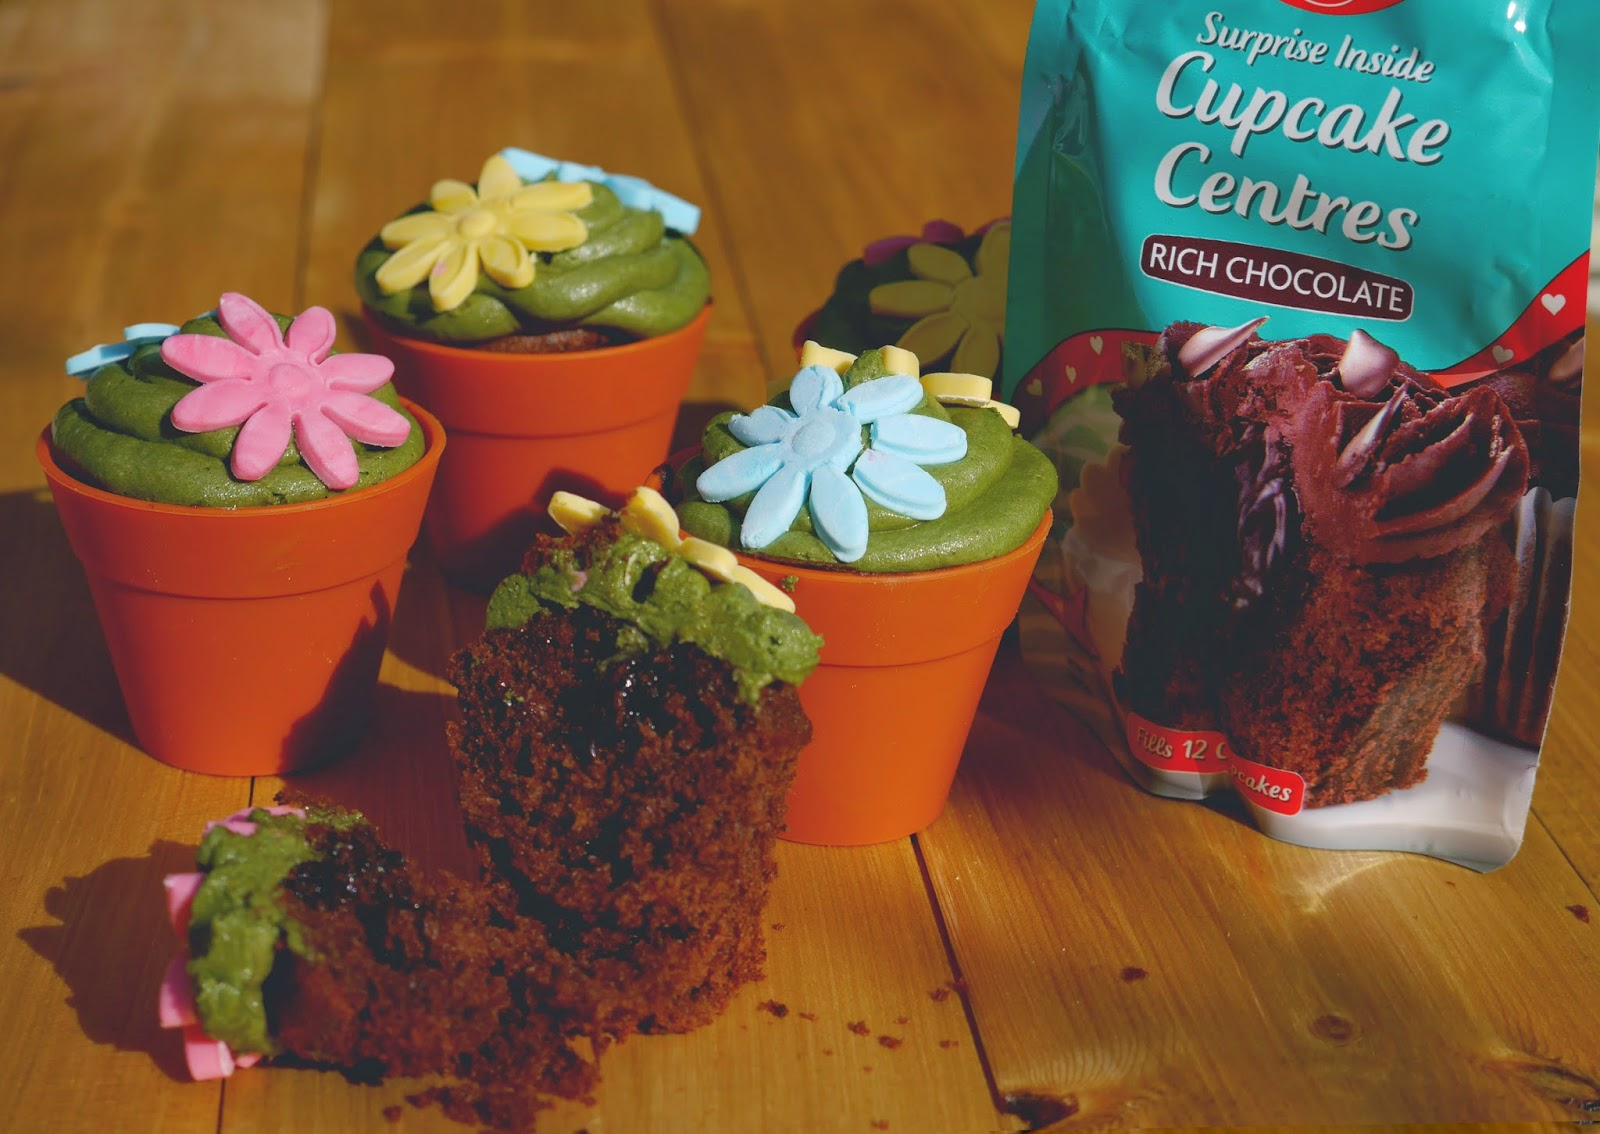 Dr Oetker Surprise Inside Flowerpot Chocolate Cupcakes